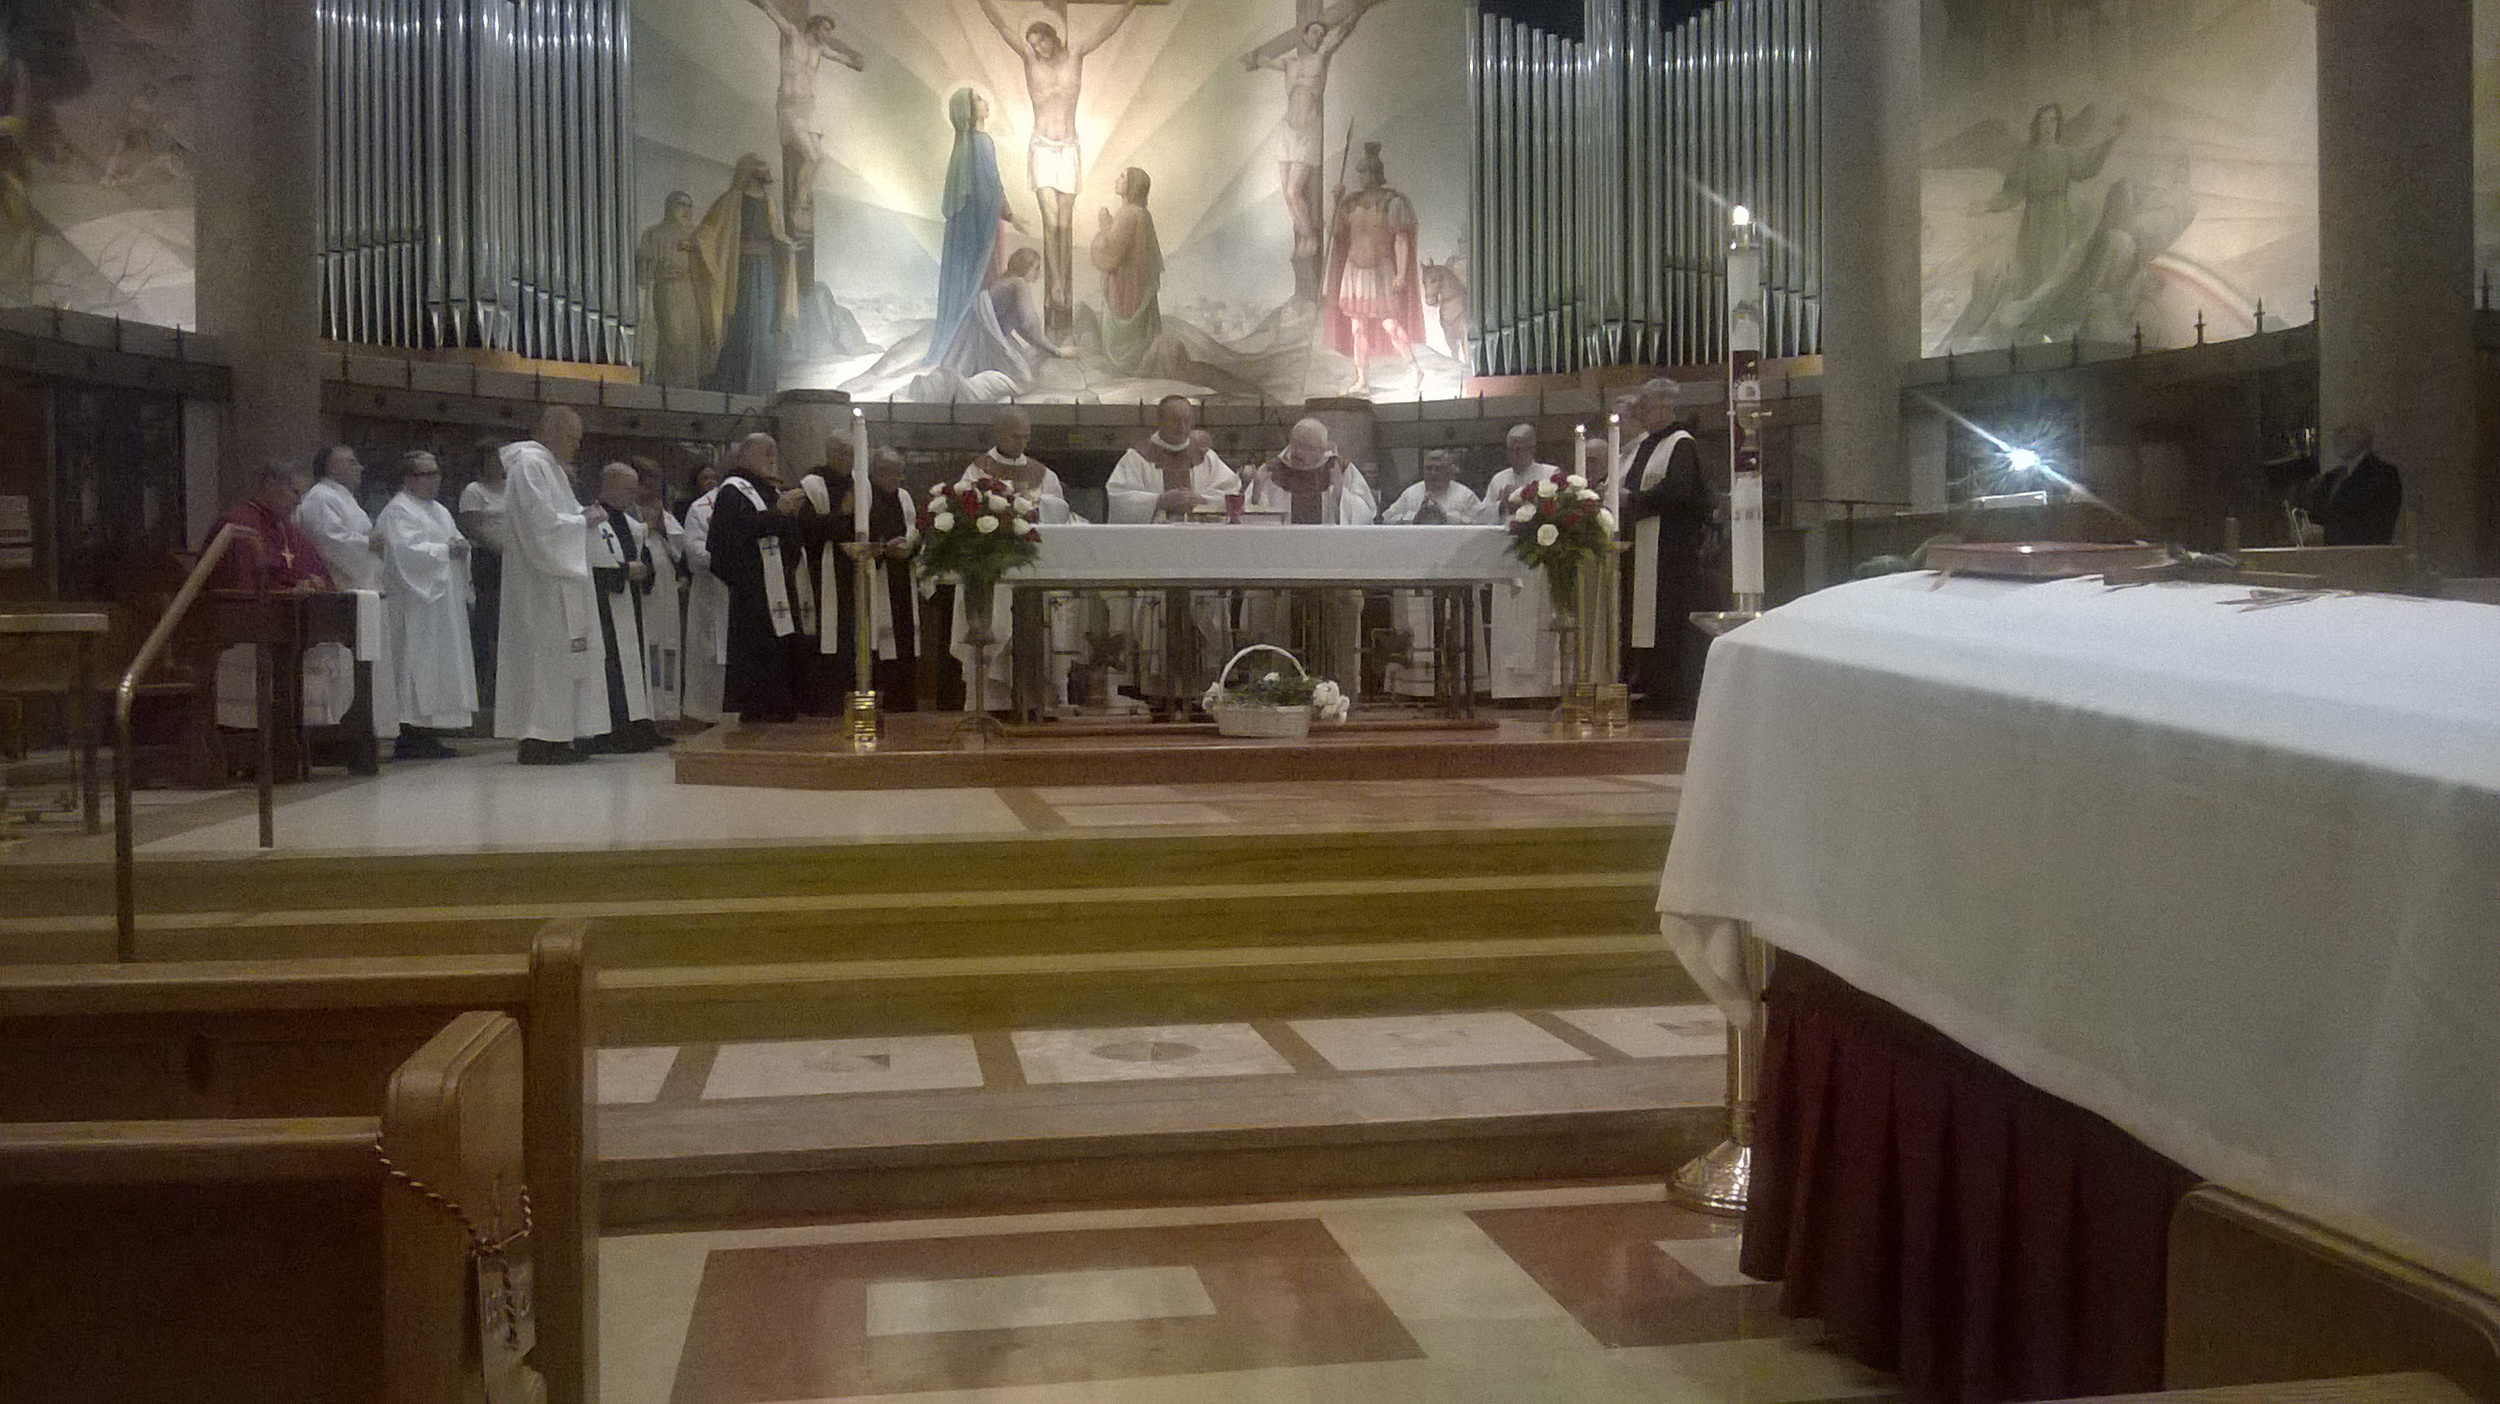 FUNERAL MASS FOR FR. DAVID L. BRECHT, O.S.A., AT ST. CLARE OF MONTEFALCO PARISH IN GROSSE POINTE PARK, MICHIGAN